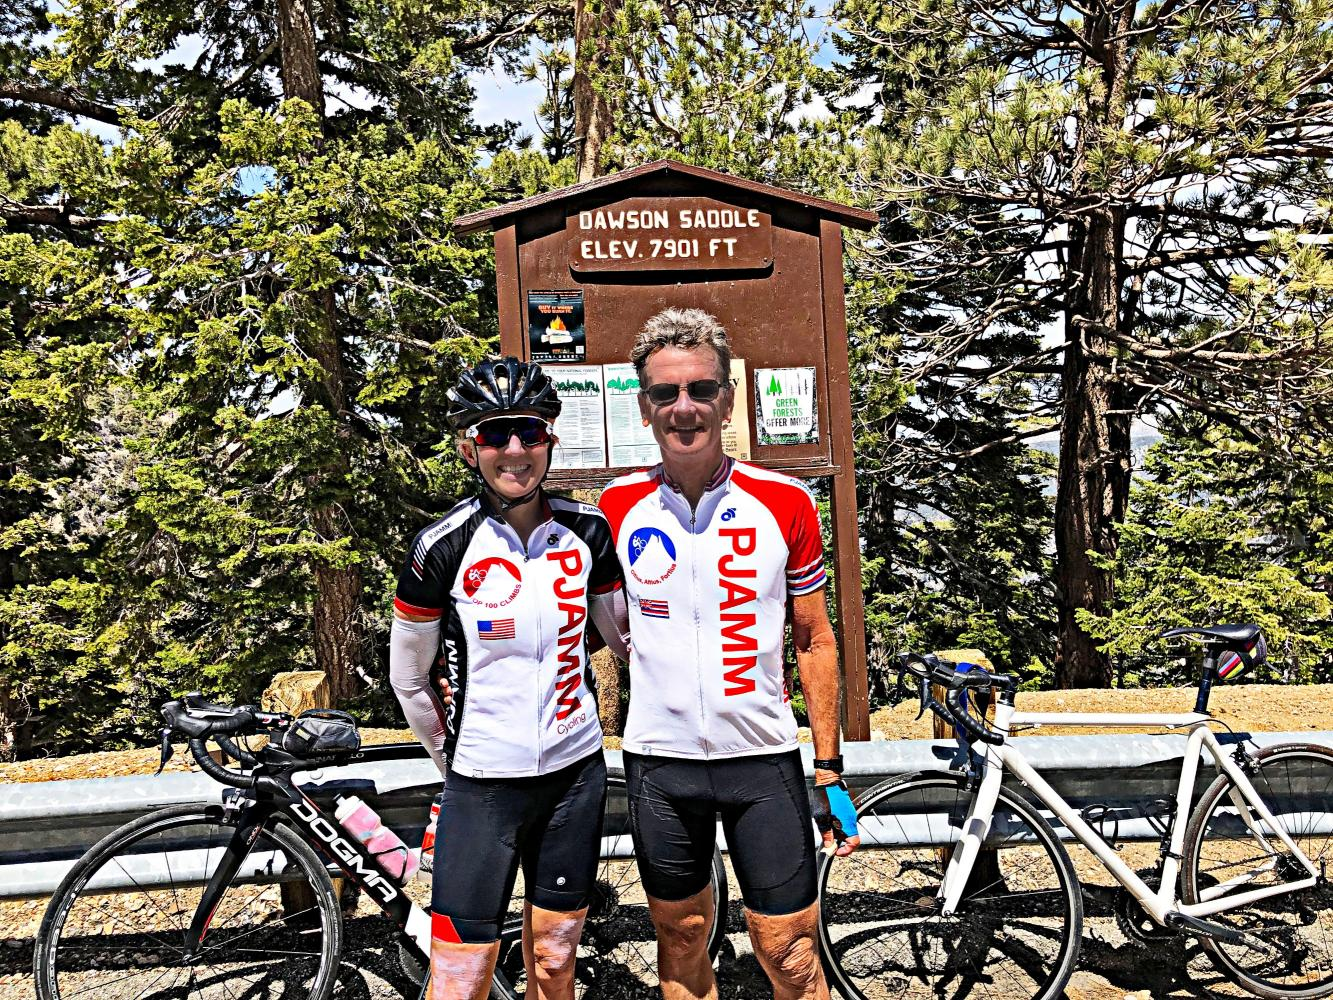 Hwy 39-Dawson Saddle Bike Climb - PJAMM Cycling